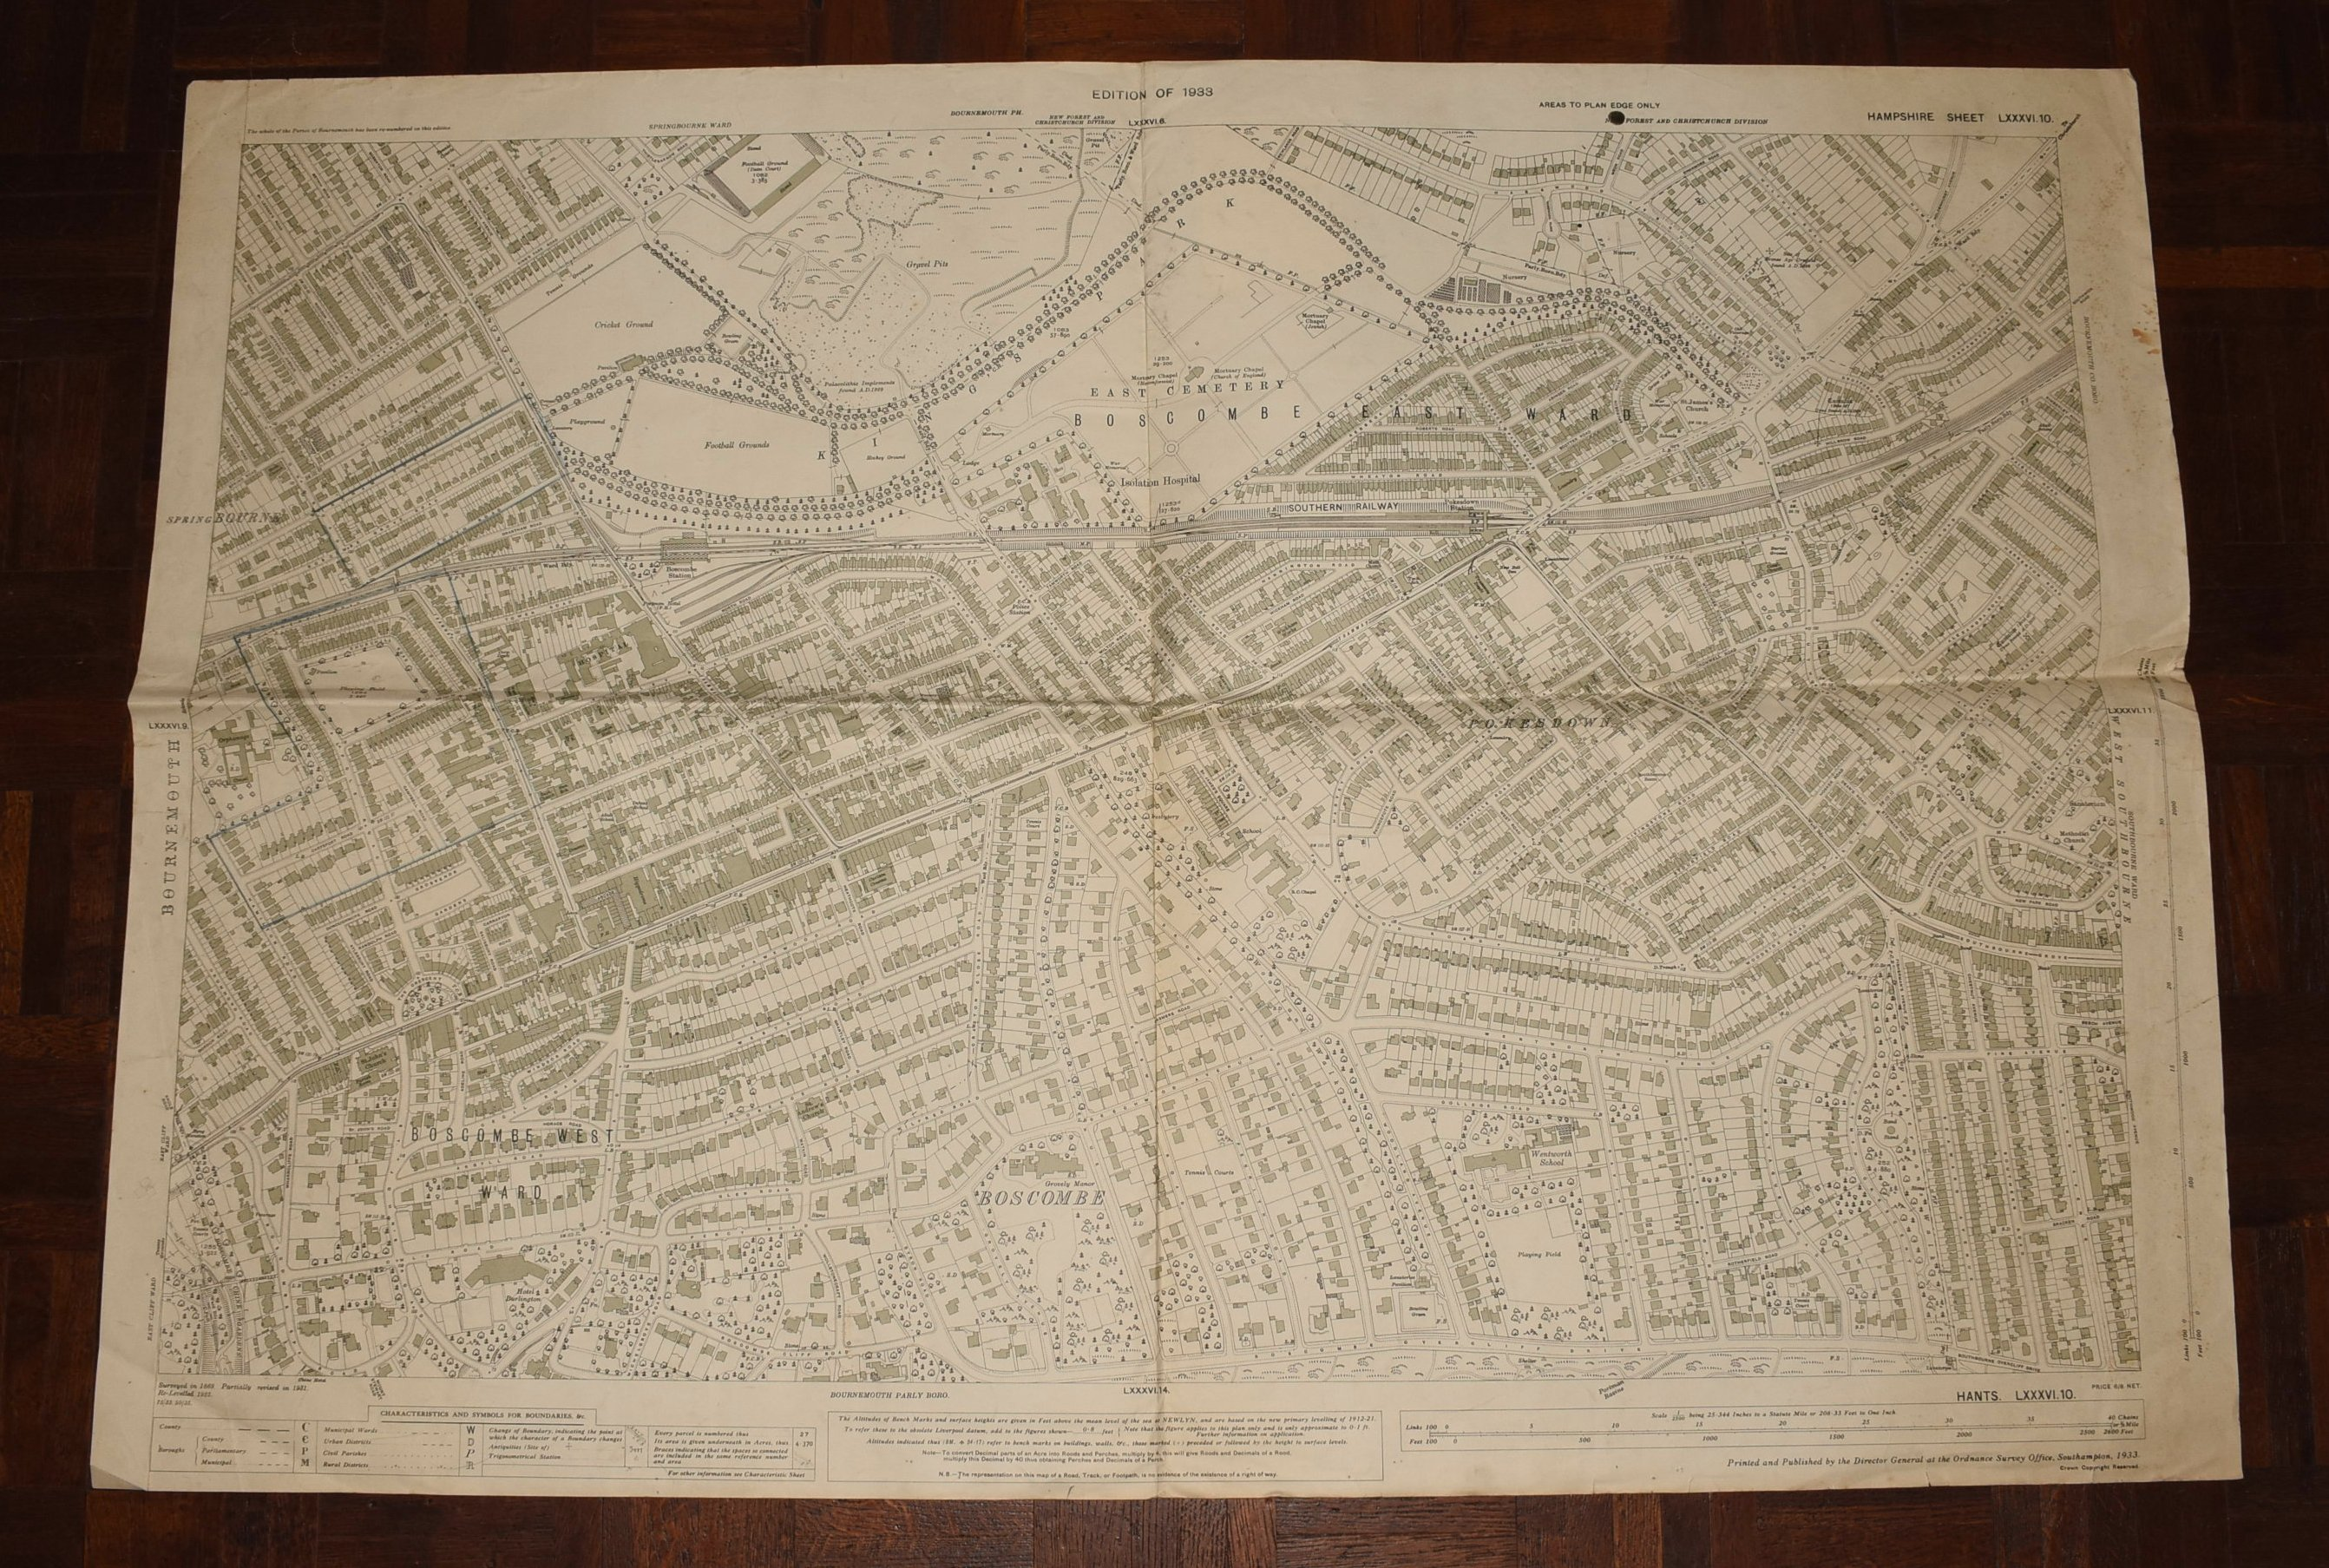 Image for LARGE Ordnance Survey MAP Sheet LXXXVI.10 HAMPSHIRE, DORSET. Bournemouth Boscombe East & West Southbourne. Scale 1:2500 or 25.344 inches to 1 mile.